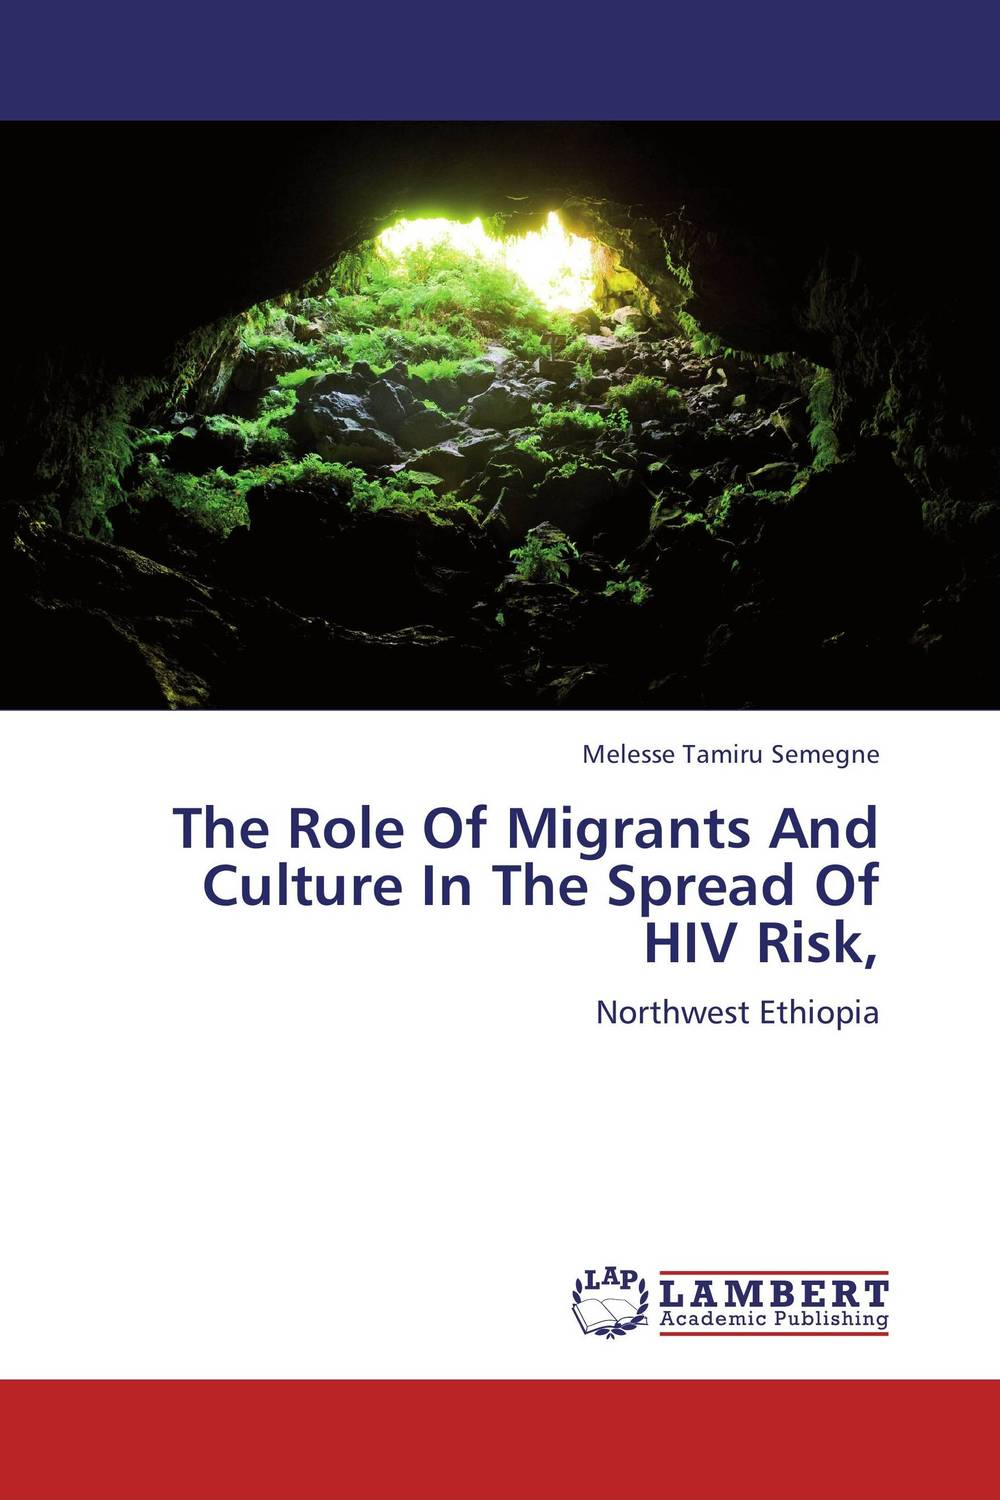 The Role Of Migrants And Culture In The Spread Of HIV Risk, risk regulation and administrative constitutionalism